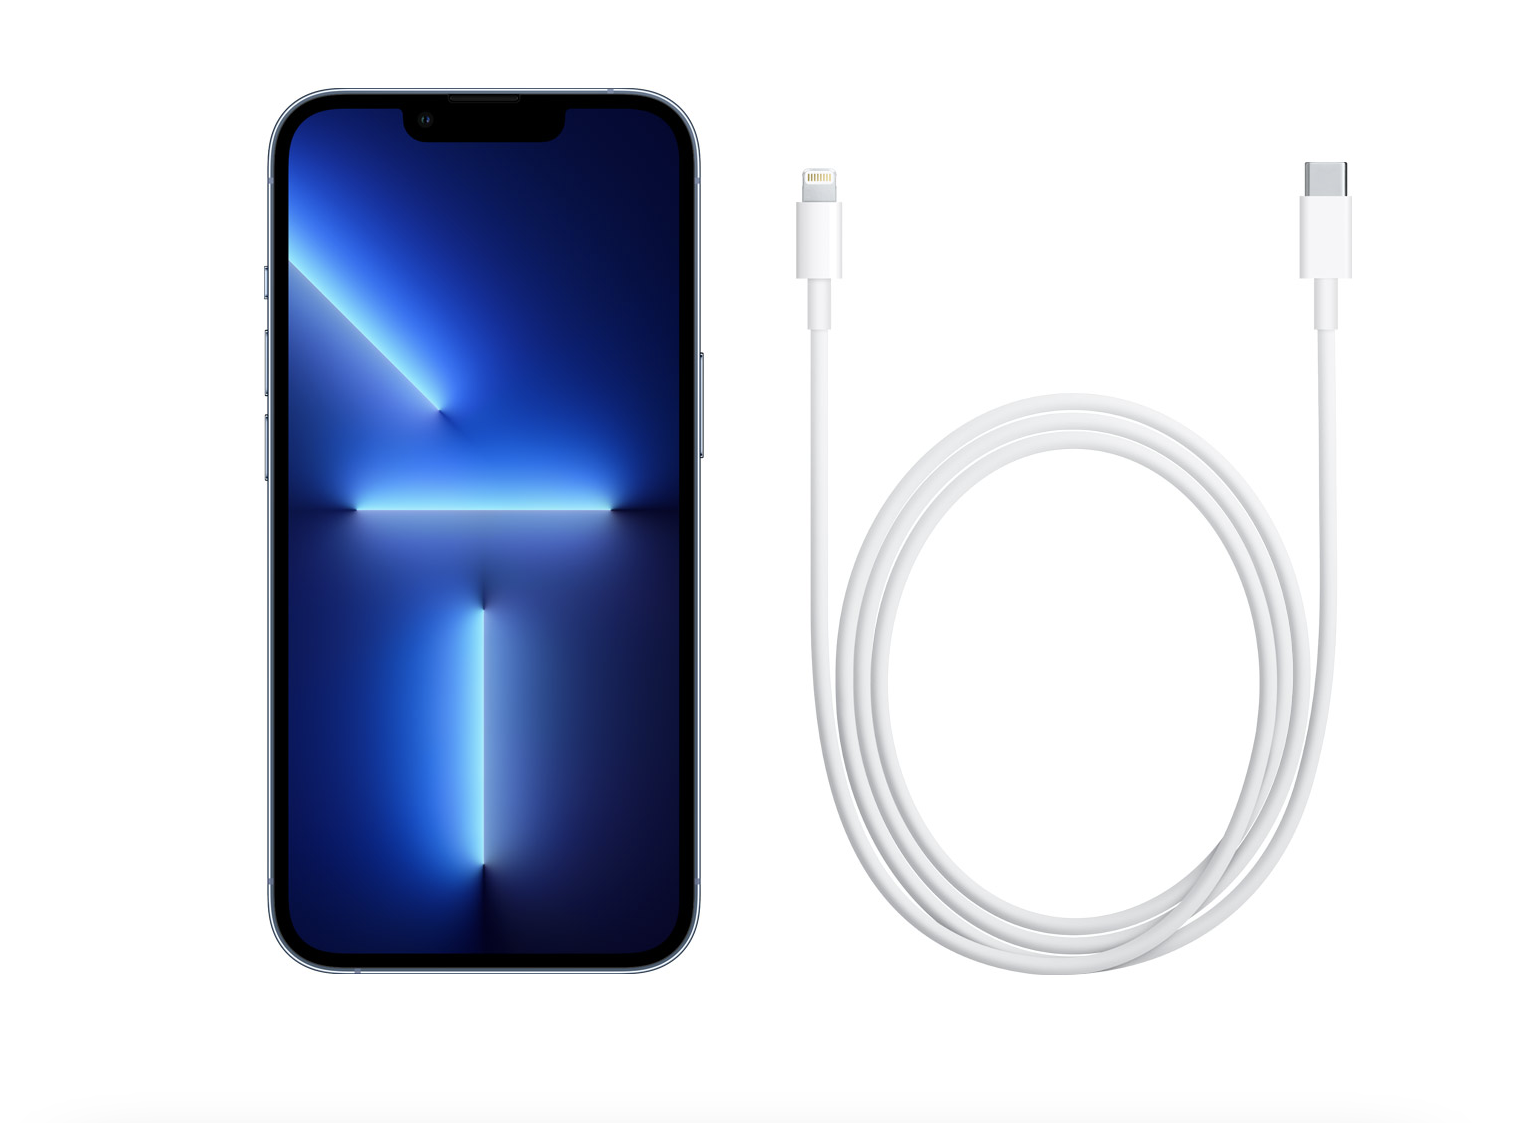 iphone 13 usb-c lightning cable